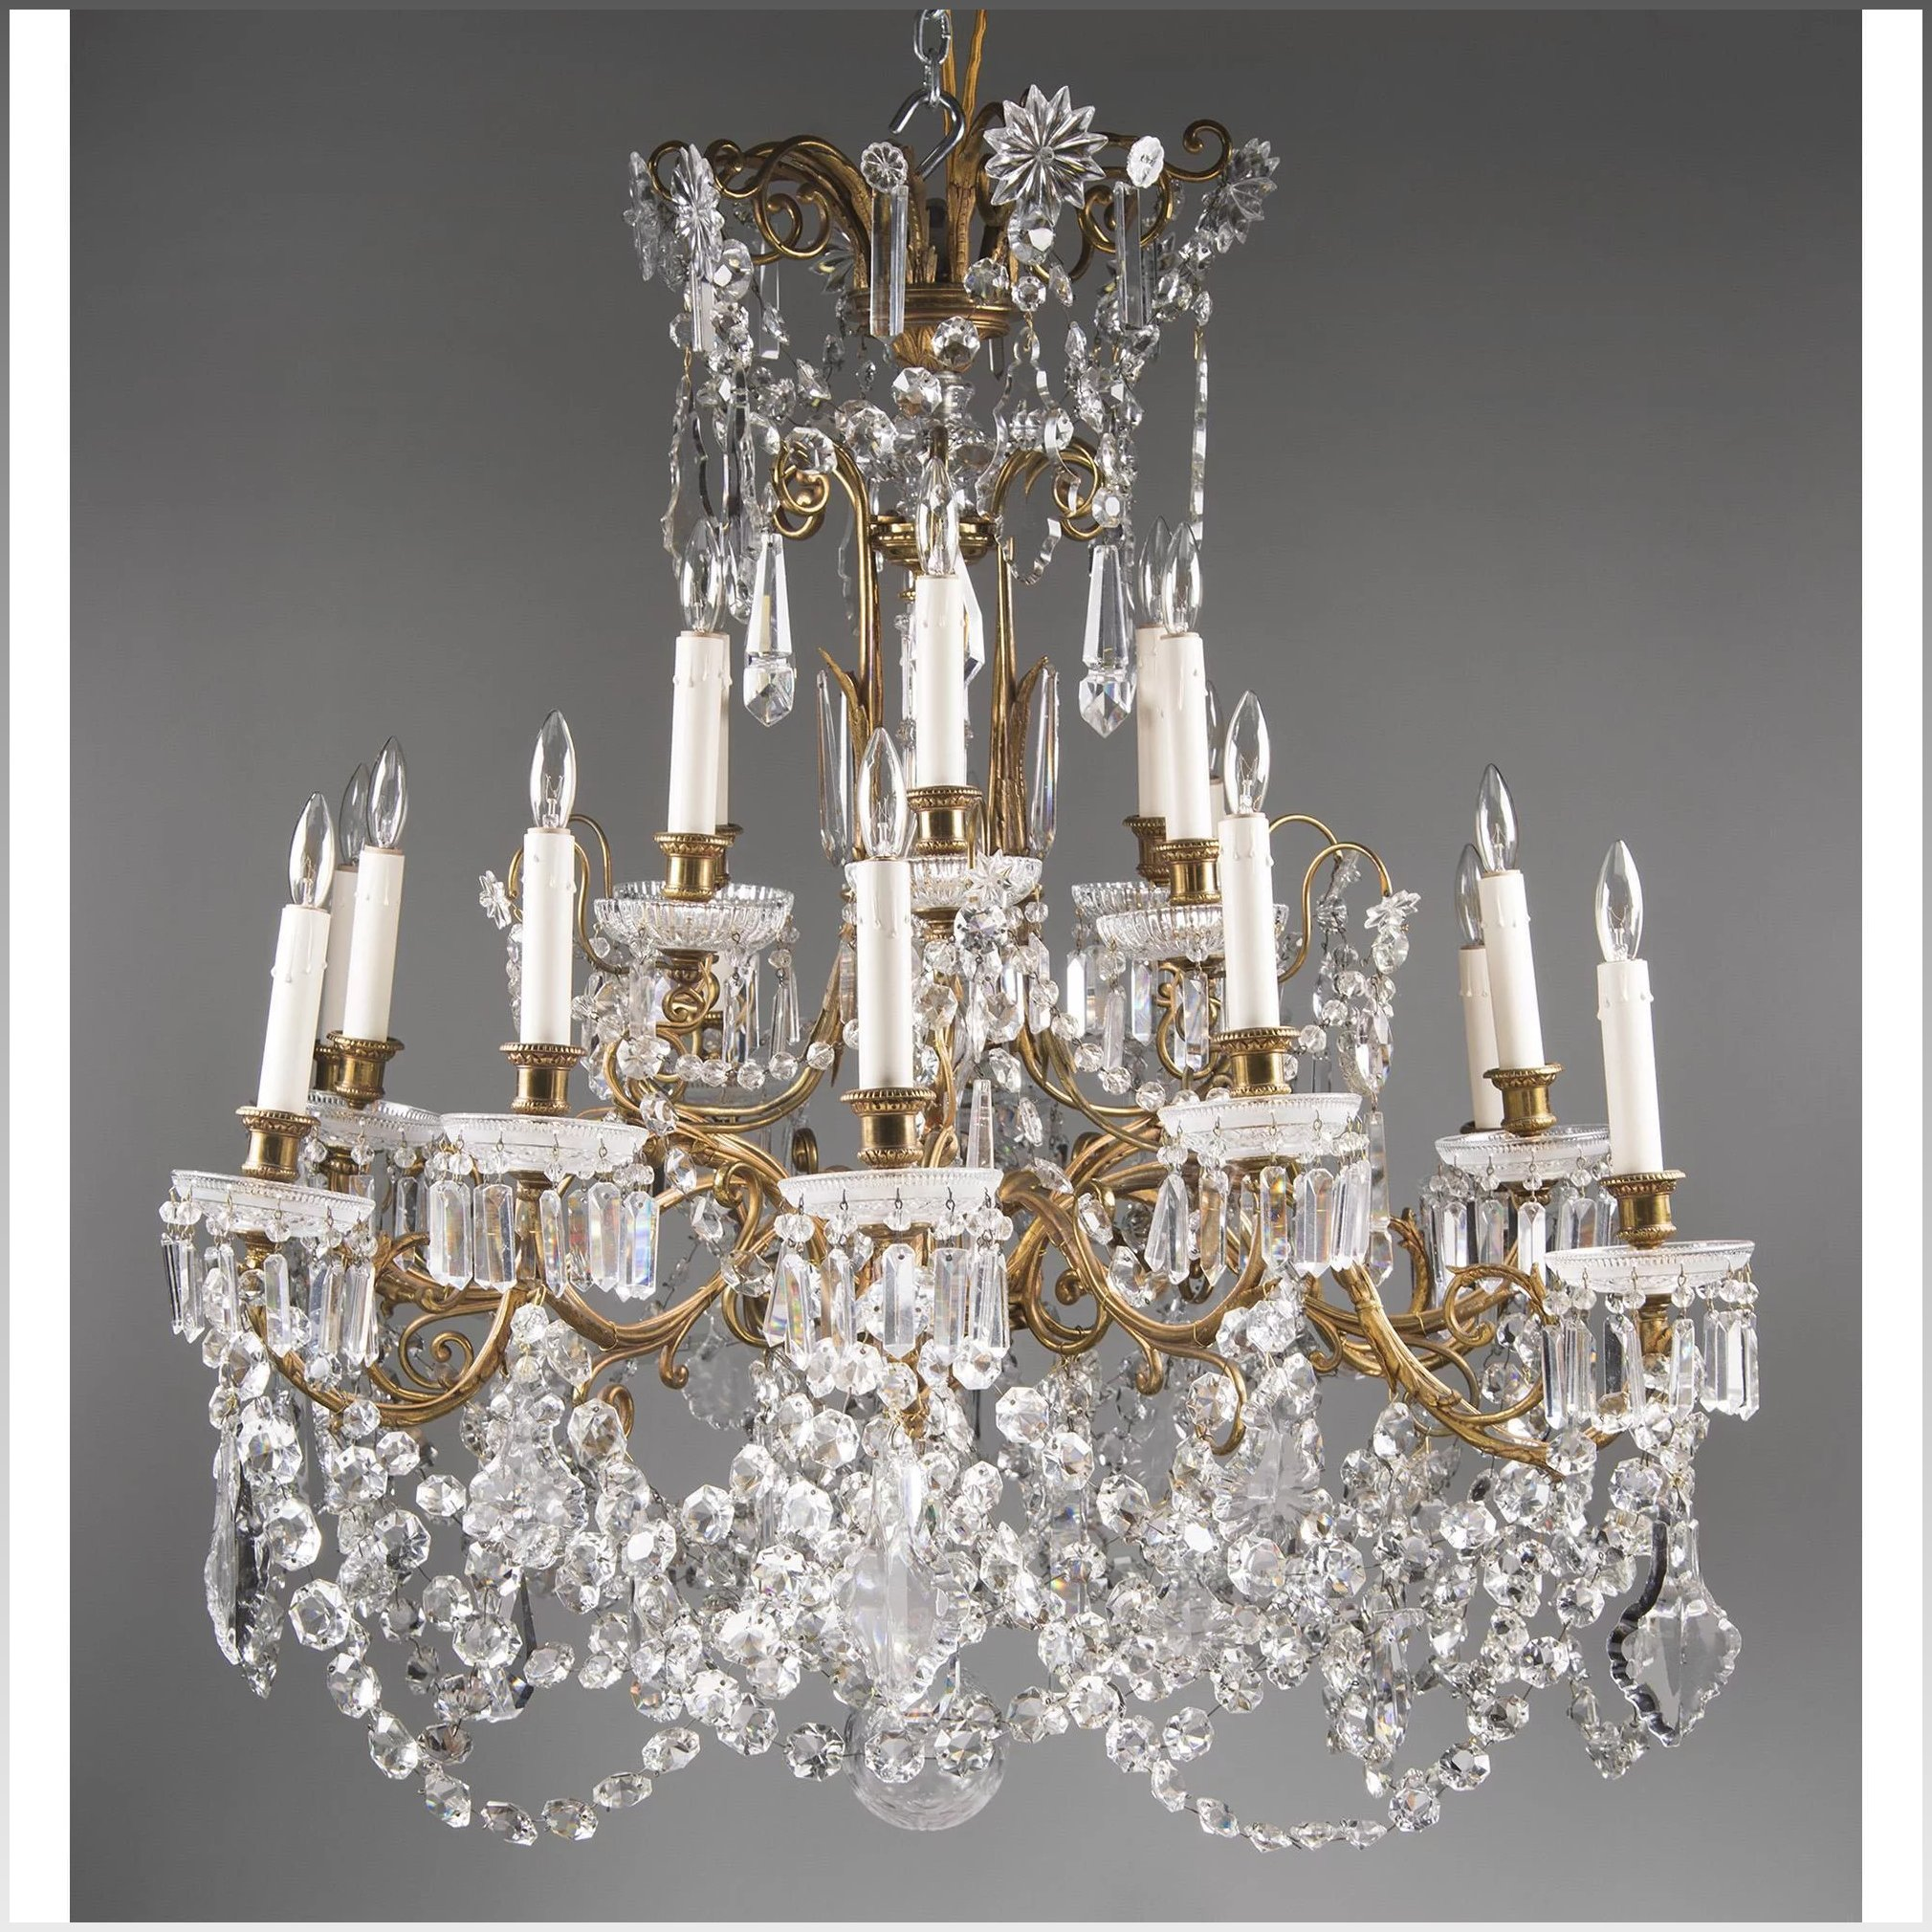 crystal contemporary stainless room rectangular modern prisms chandeliers hanging dining lighting chandelier with sconces